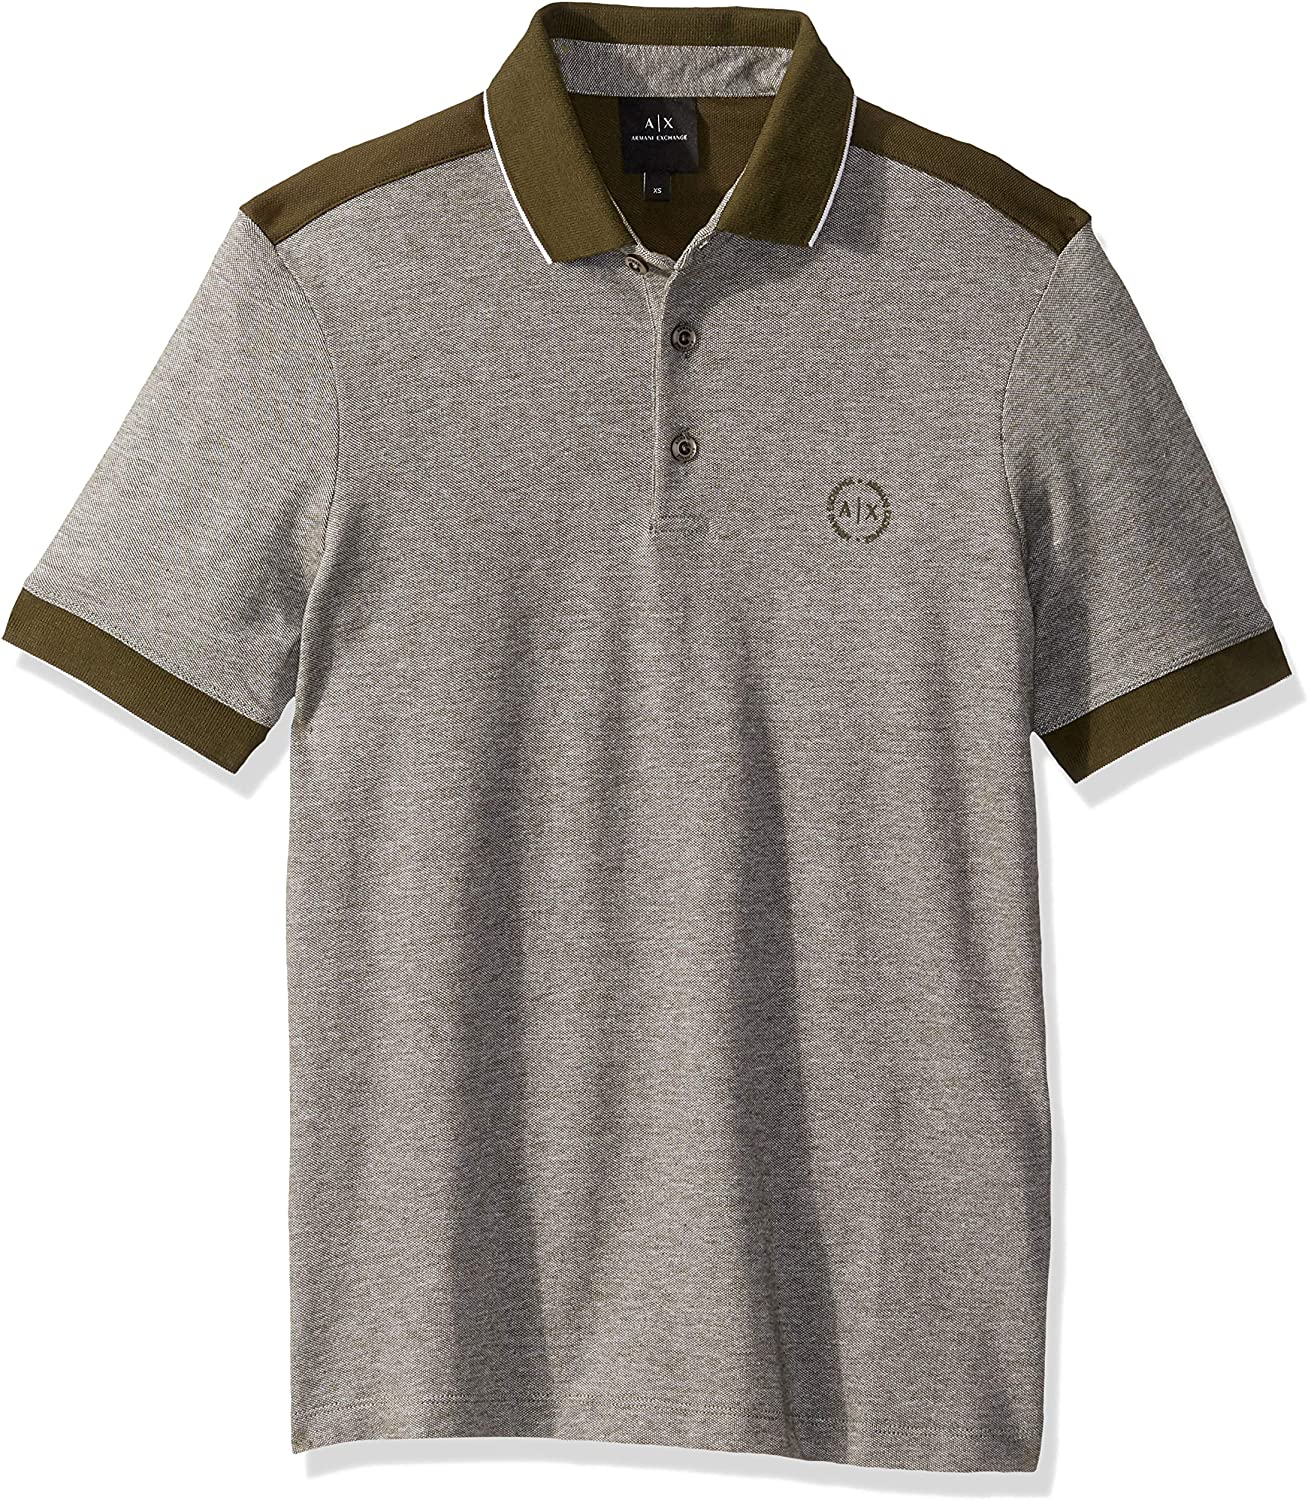 AX Armani Exchange Men's Short Polo Shirt with Stripes on Sleeve